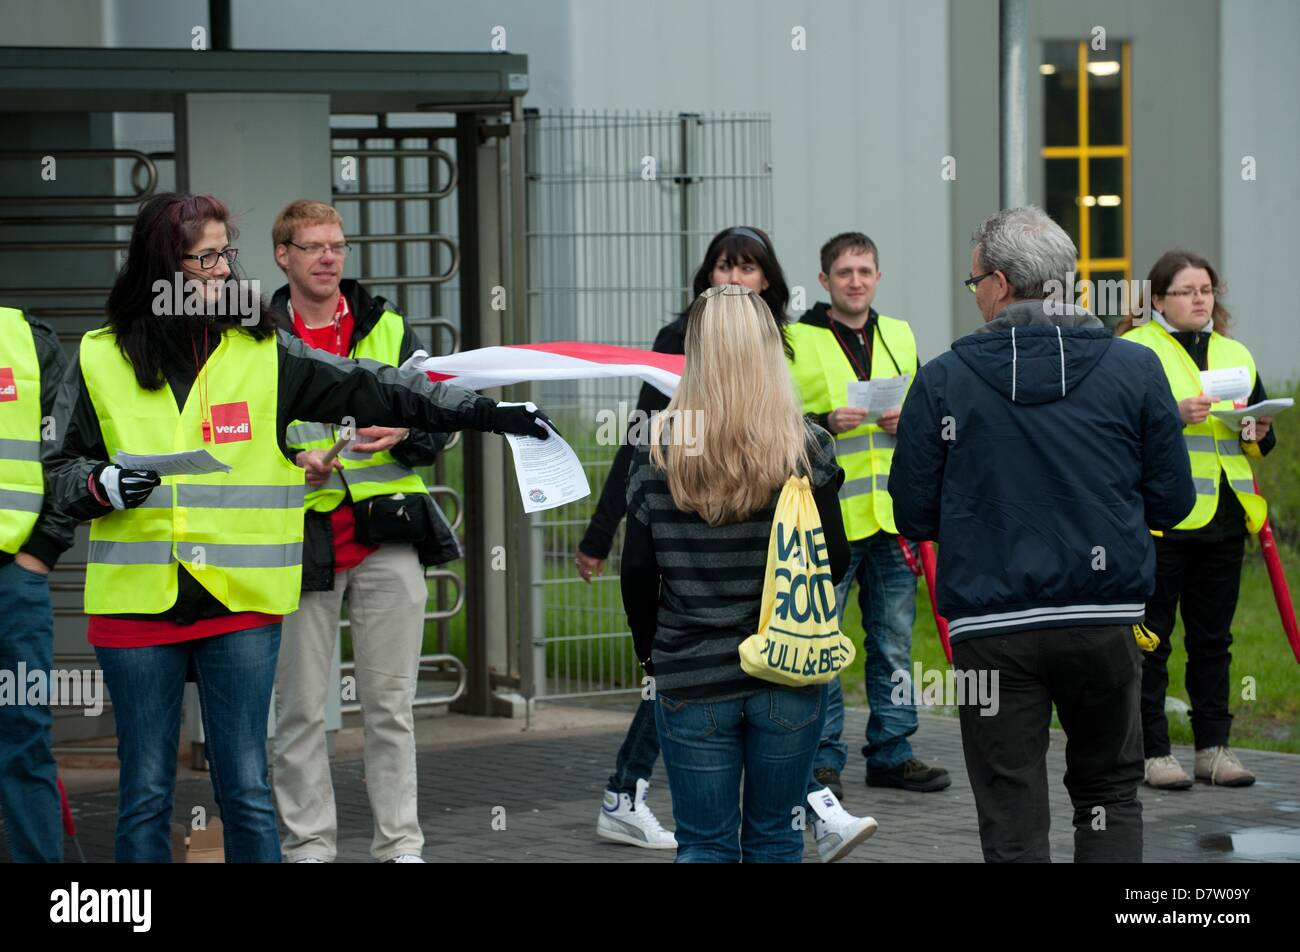 Bad Hersfeld, Germany, 14 May 2013. Trade unionists hand out leaflets to employees while other employees of online - Stock Image